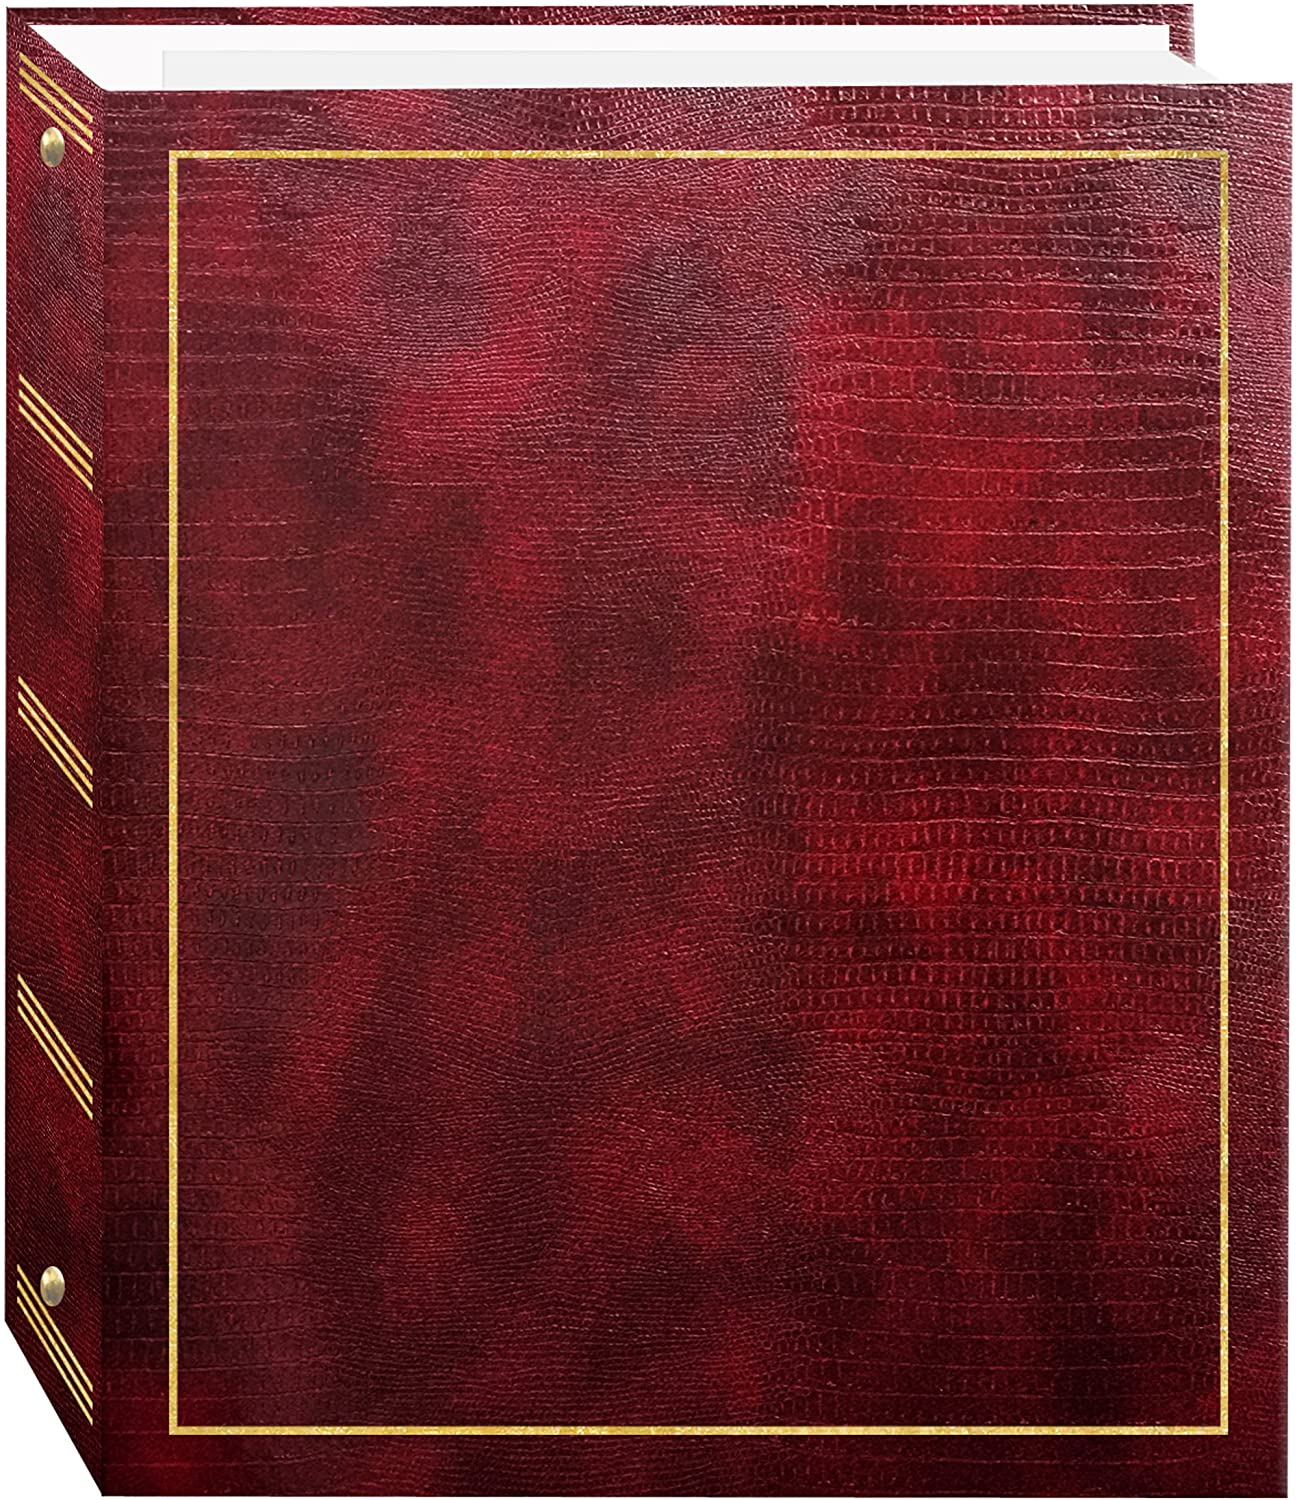 Magnetic Self-Stick 3-Ring Photo Album 100 Pages (50 Sheets), Burgundy Red